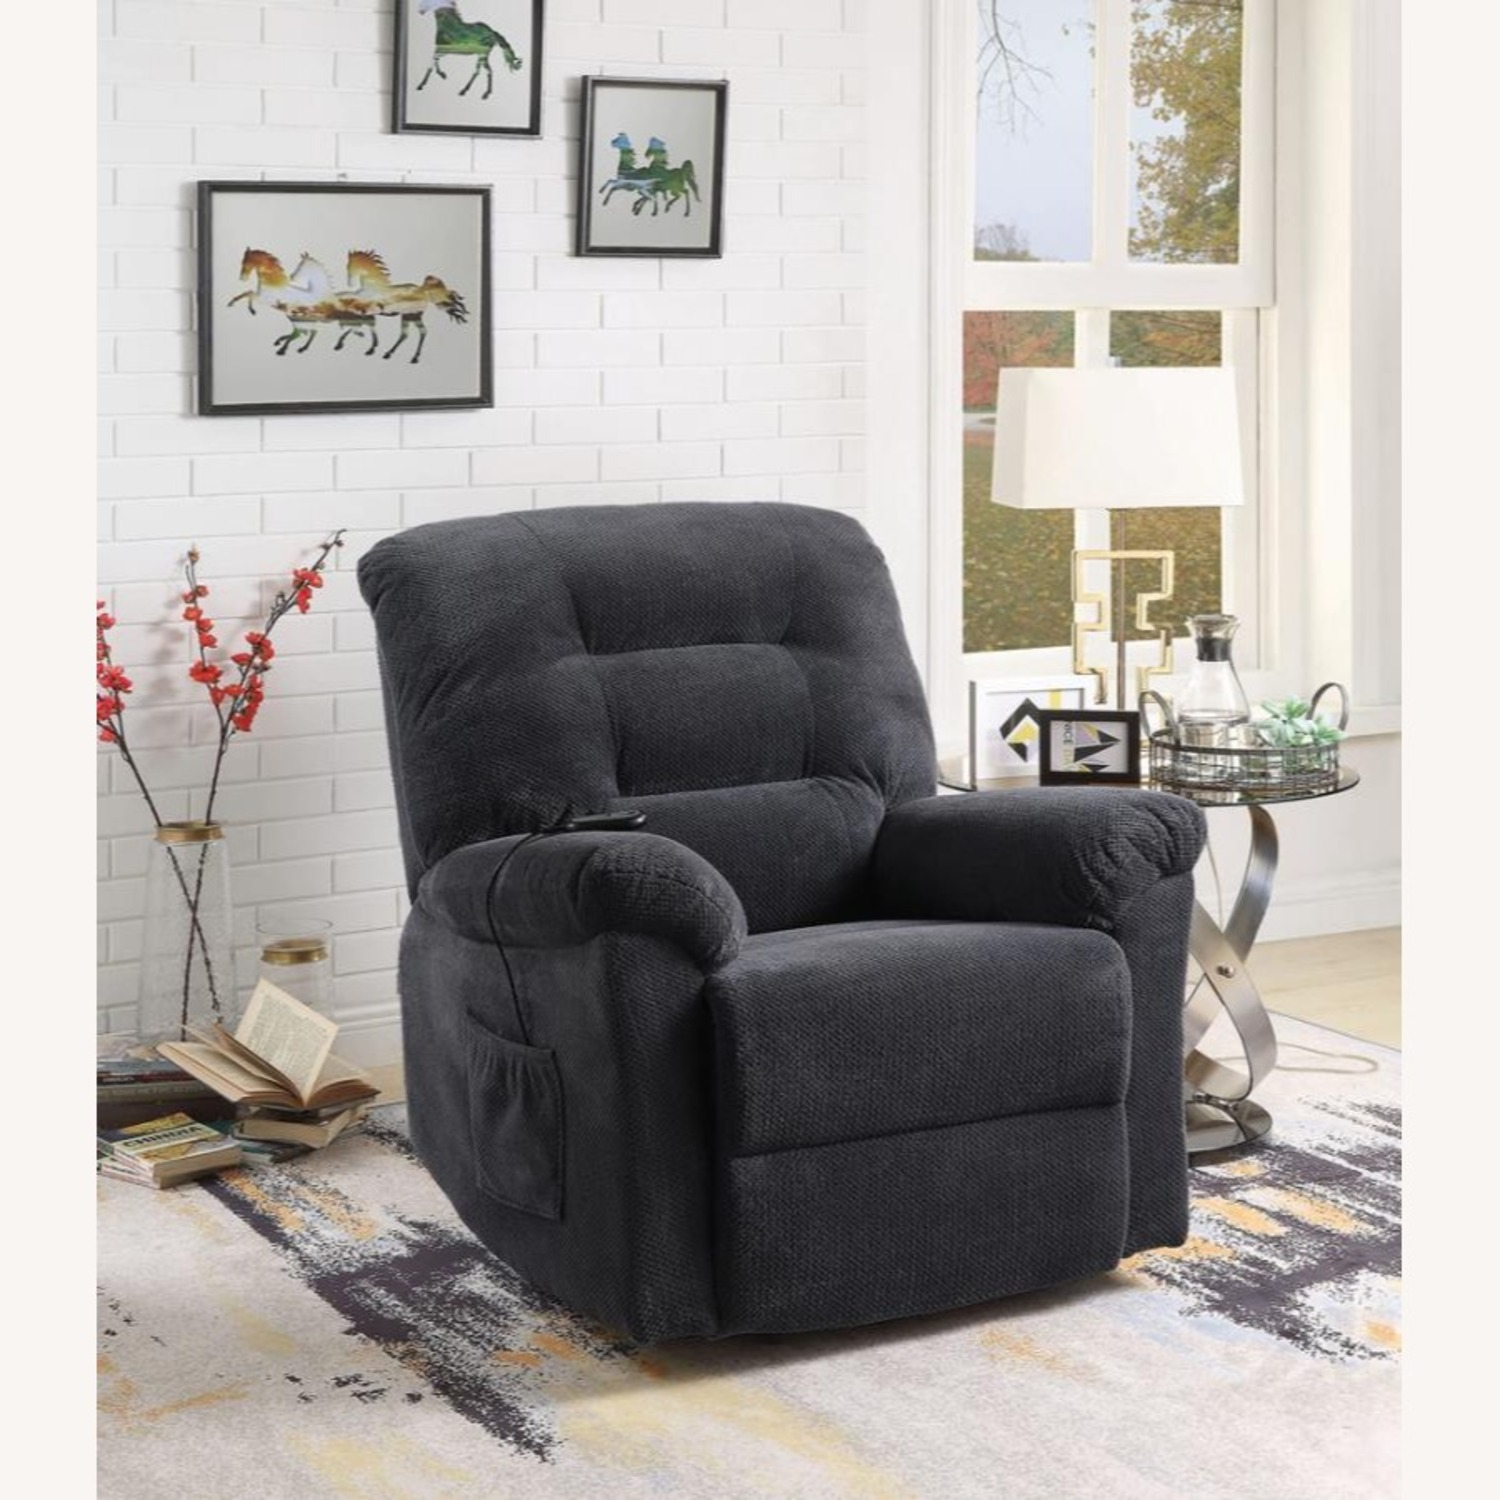 Power Lift Recliner In Charcoal Chenille Fabric - image-8